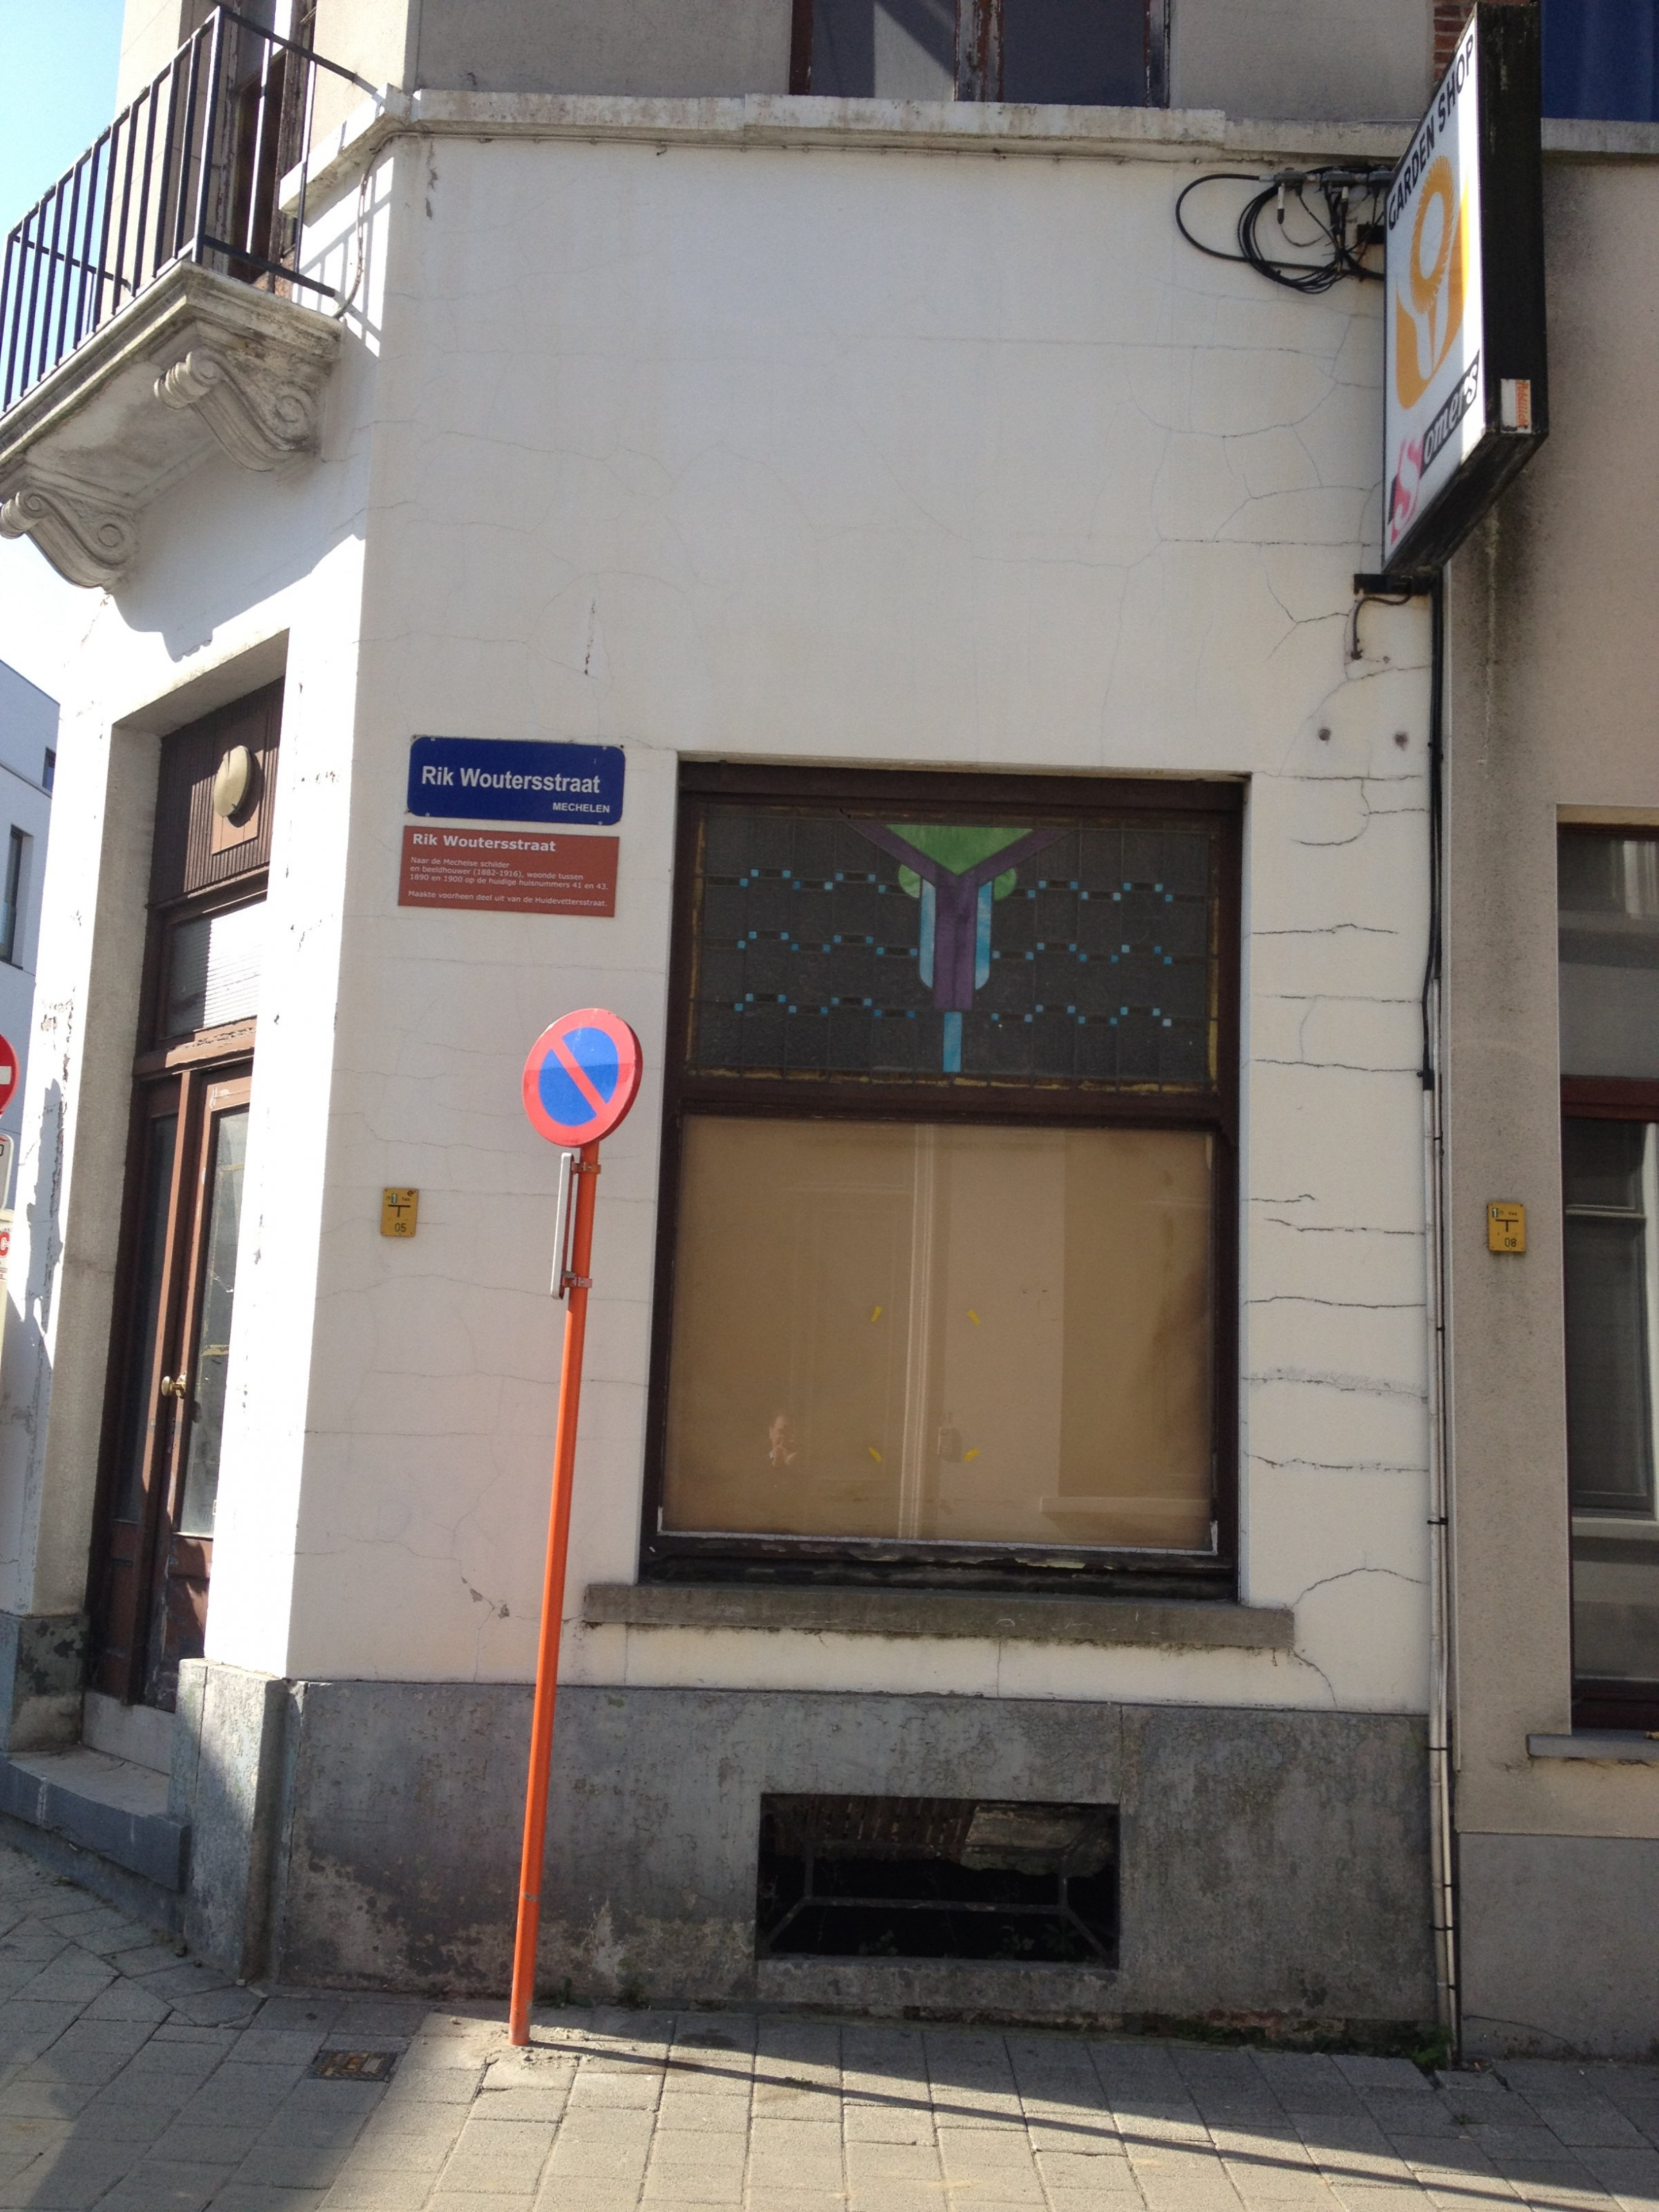 Project Muntstraat